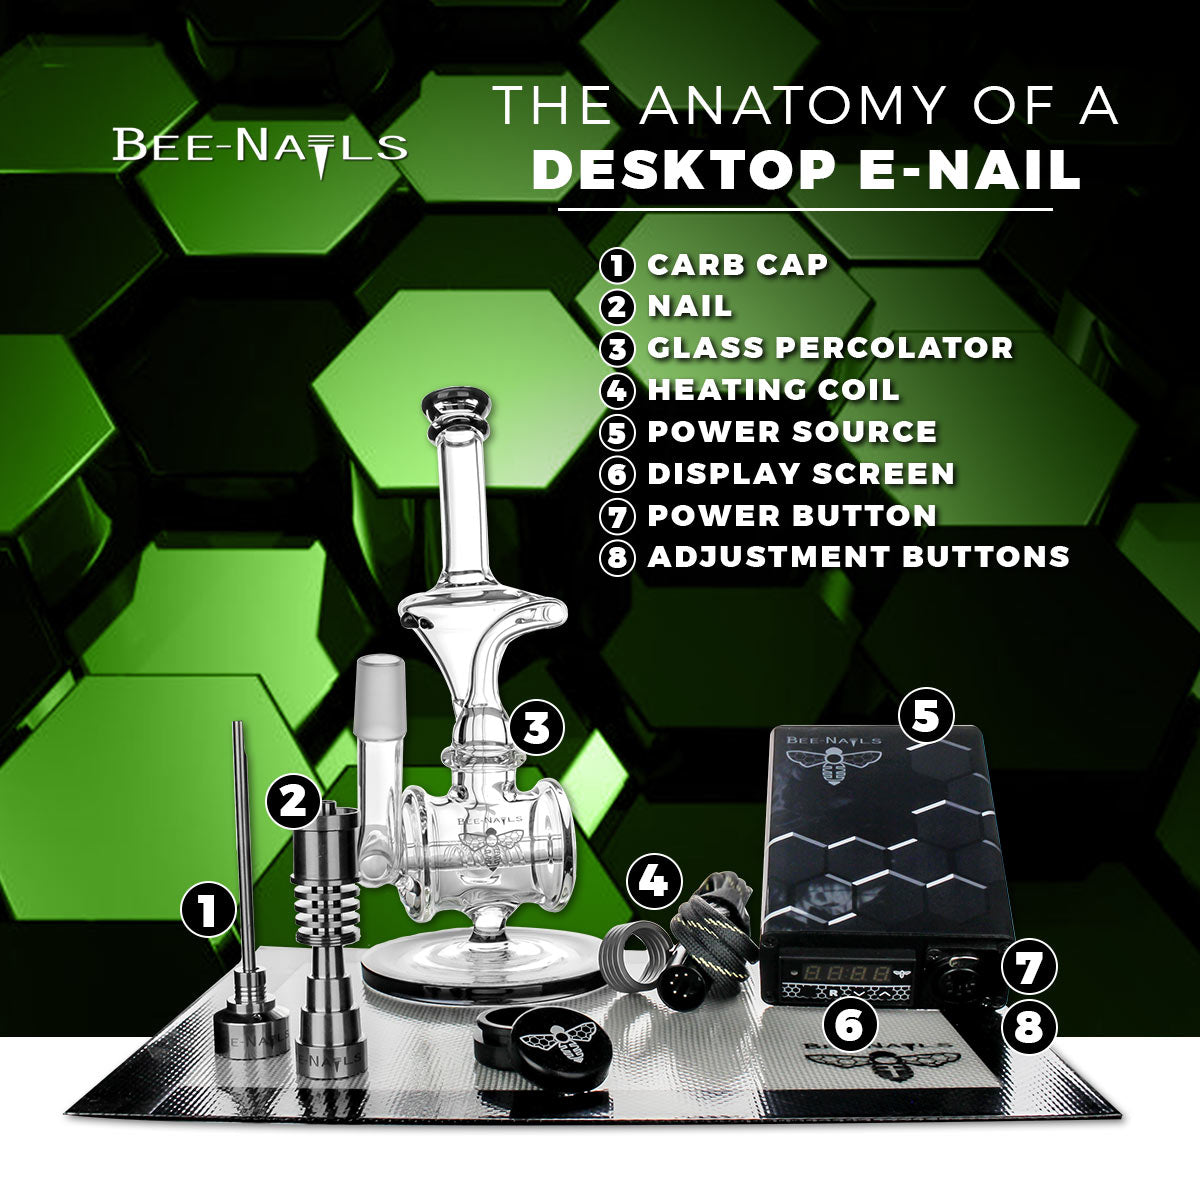 Bee-Nails | The Best and Trusted Electric Vaporizers on the